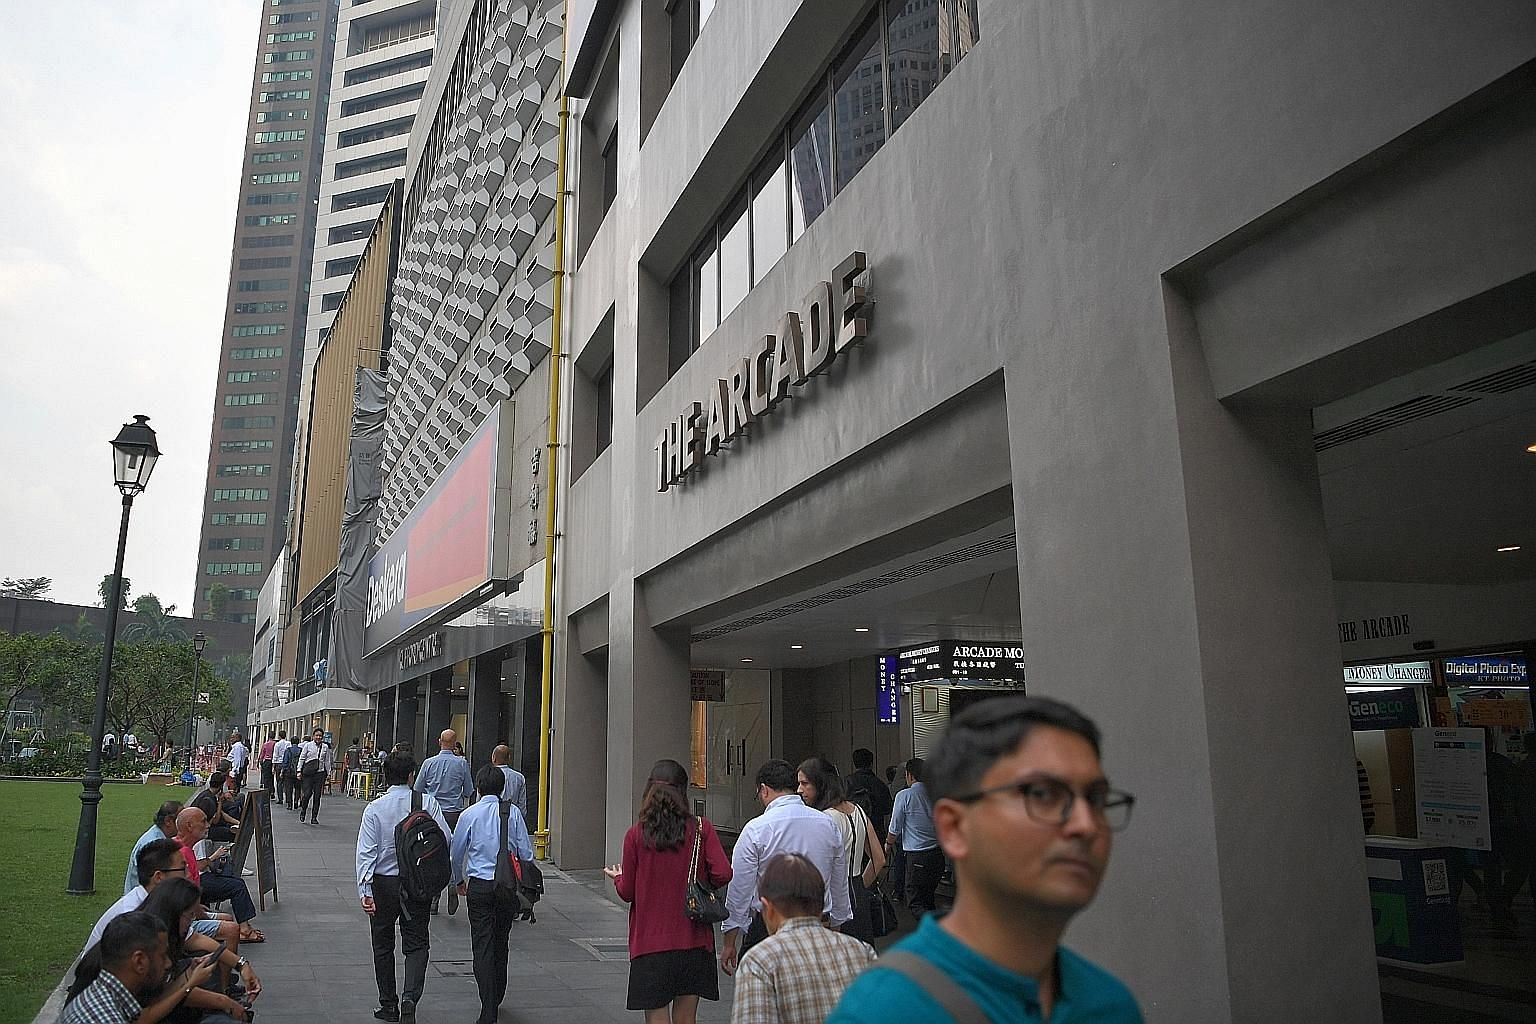 Marketing agent Colliers said that due to the year-end holidays, developers had asked for the tender deadline to be extended to give them more time to evaluate The Arcade site. ST PHOTO: ARIFFIN JAMAR